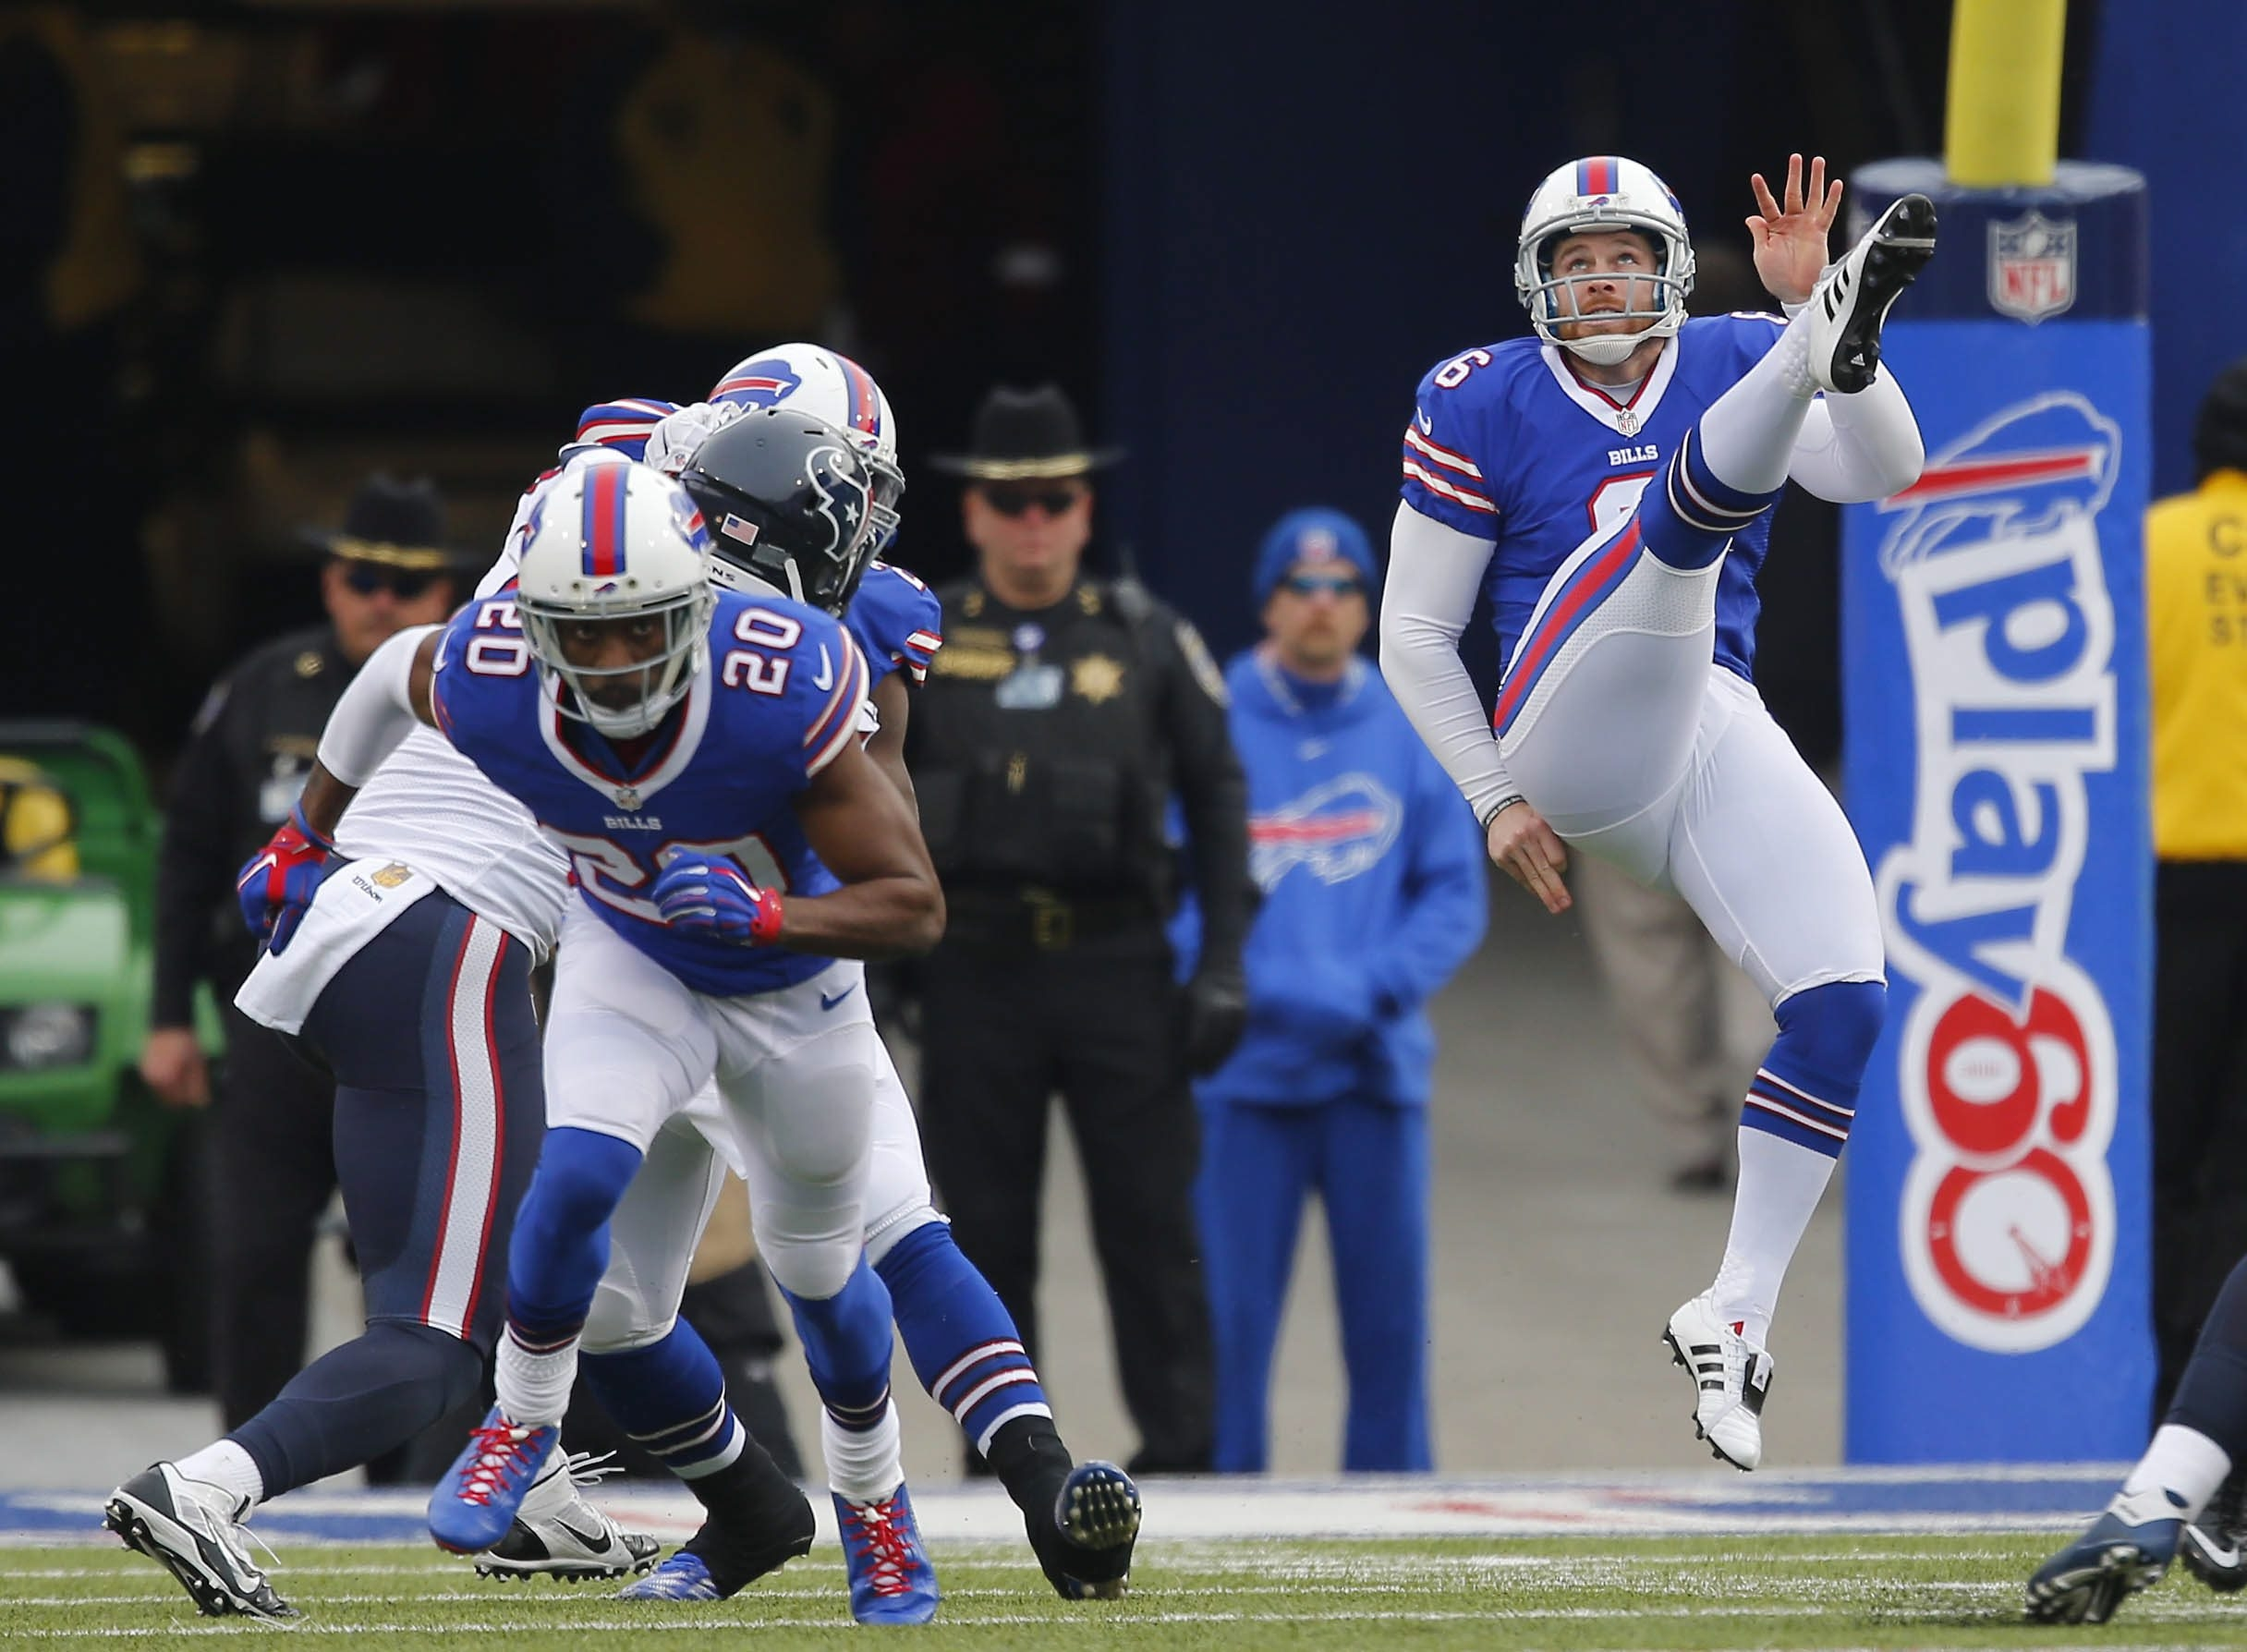 Colton Schmidt, who had a 45.3-yard net punting average, helped Bills coach Rex Ryan play the field-position game against Houston.